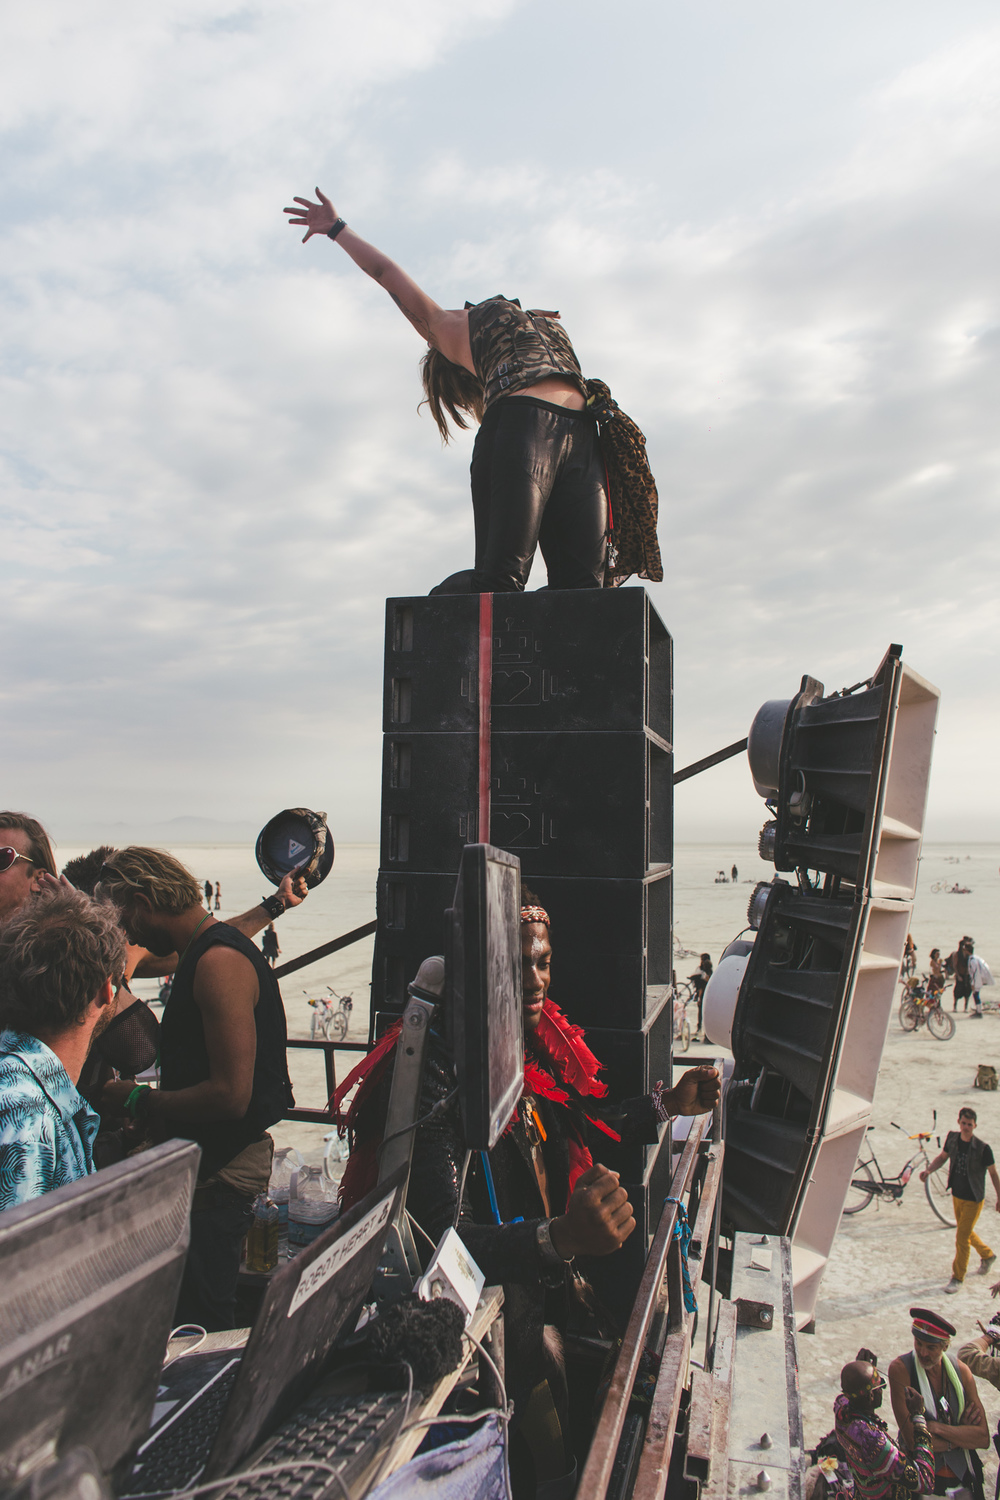 VOENA_BLACK_ROCK_CITY_BRC_BURNING_MAN_2013_PHOTOGRAPHY_EDITORIAL_SAM_WHITESIDE_CAI_GRIFFIN_DESERT_BURNERS-15.jpg